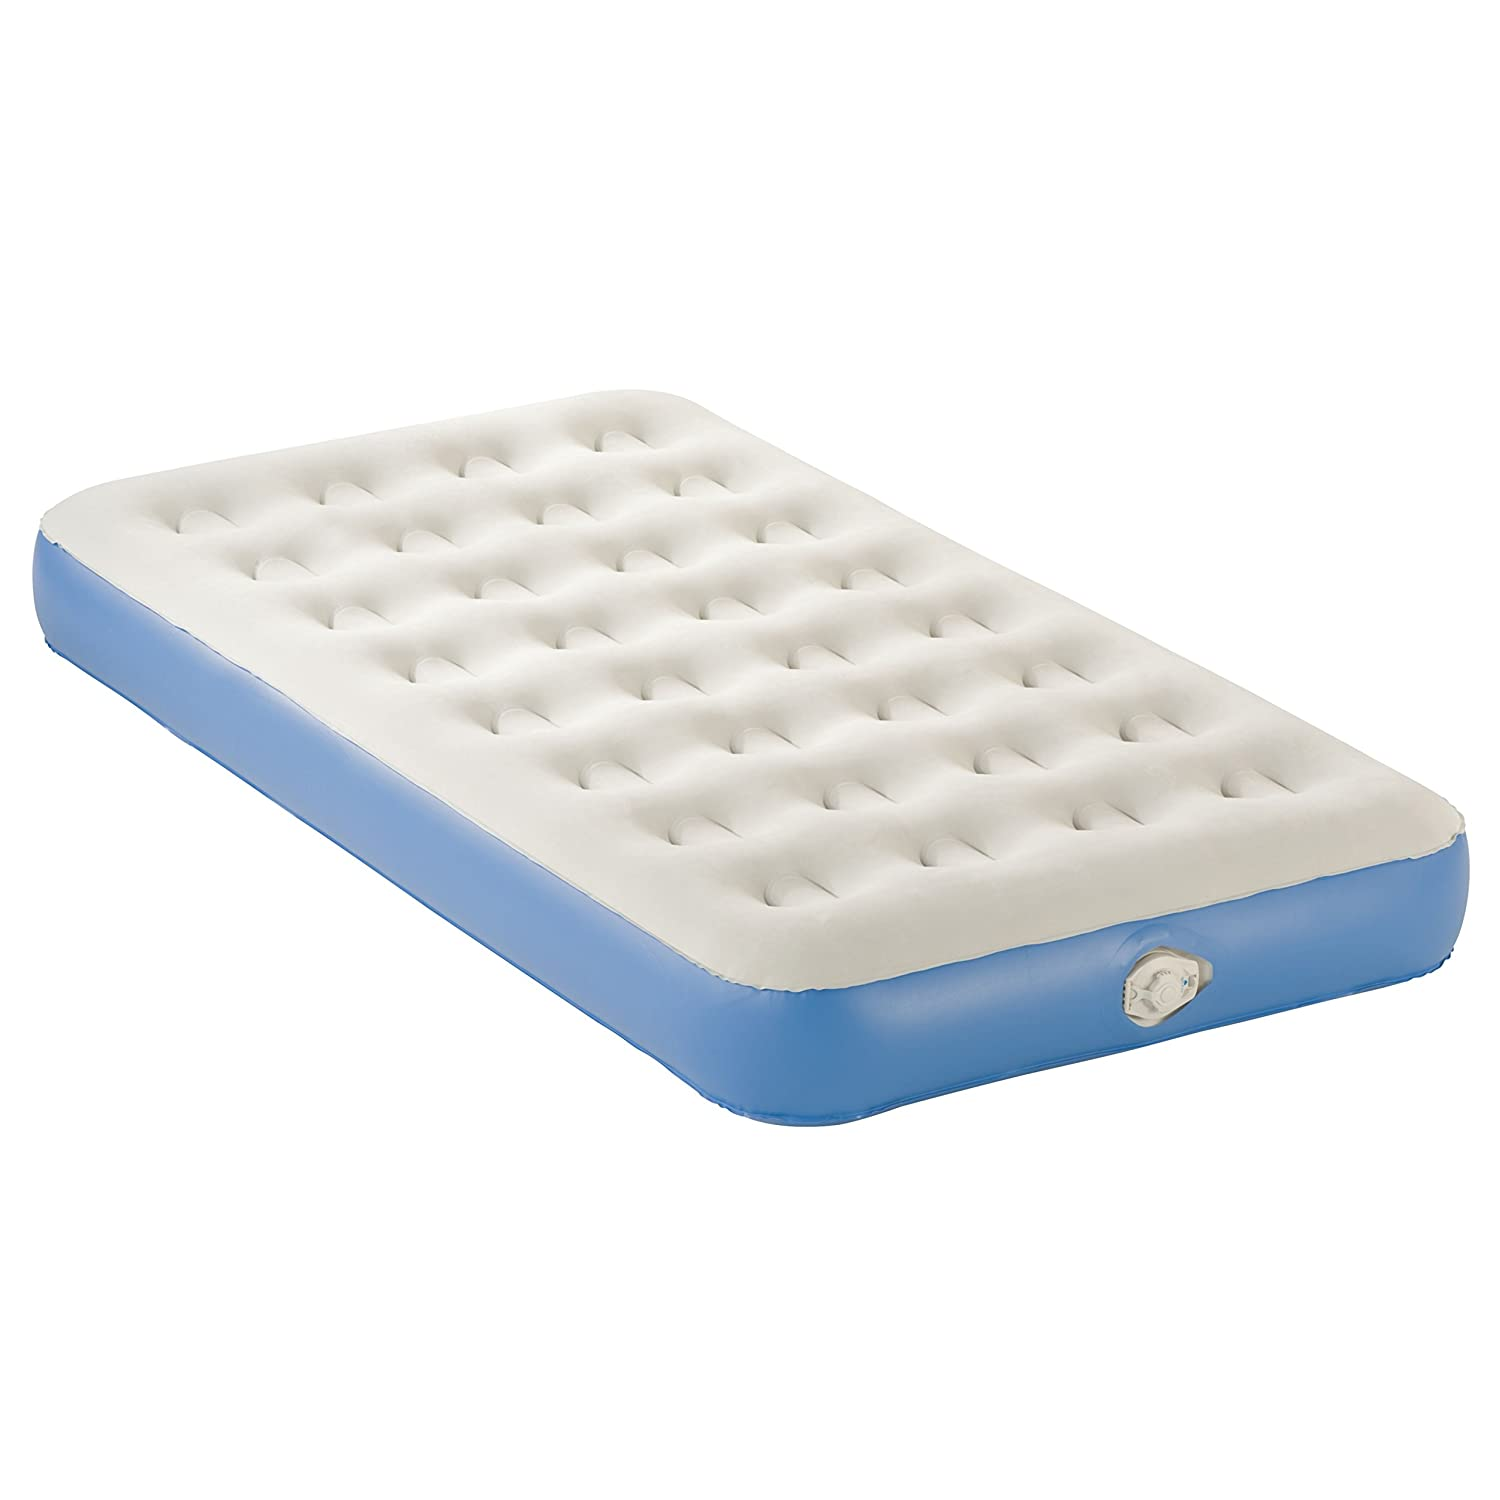 AeroBed Classic Air Mattress